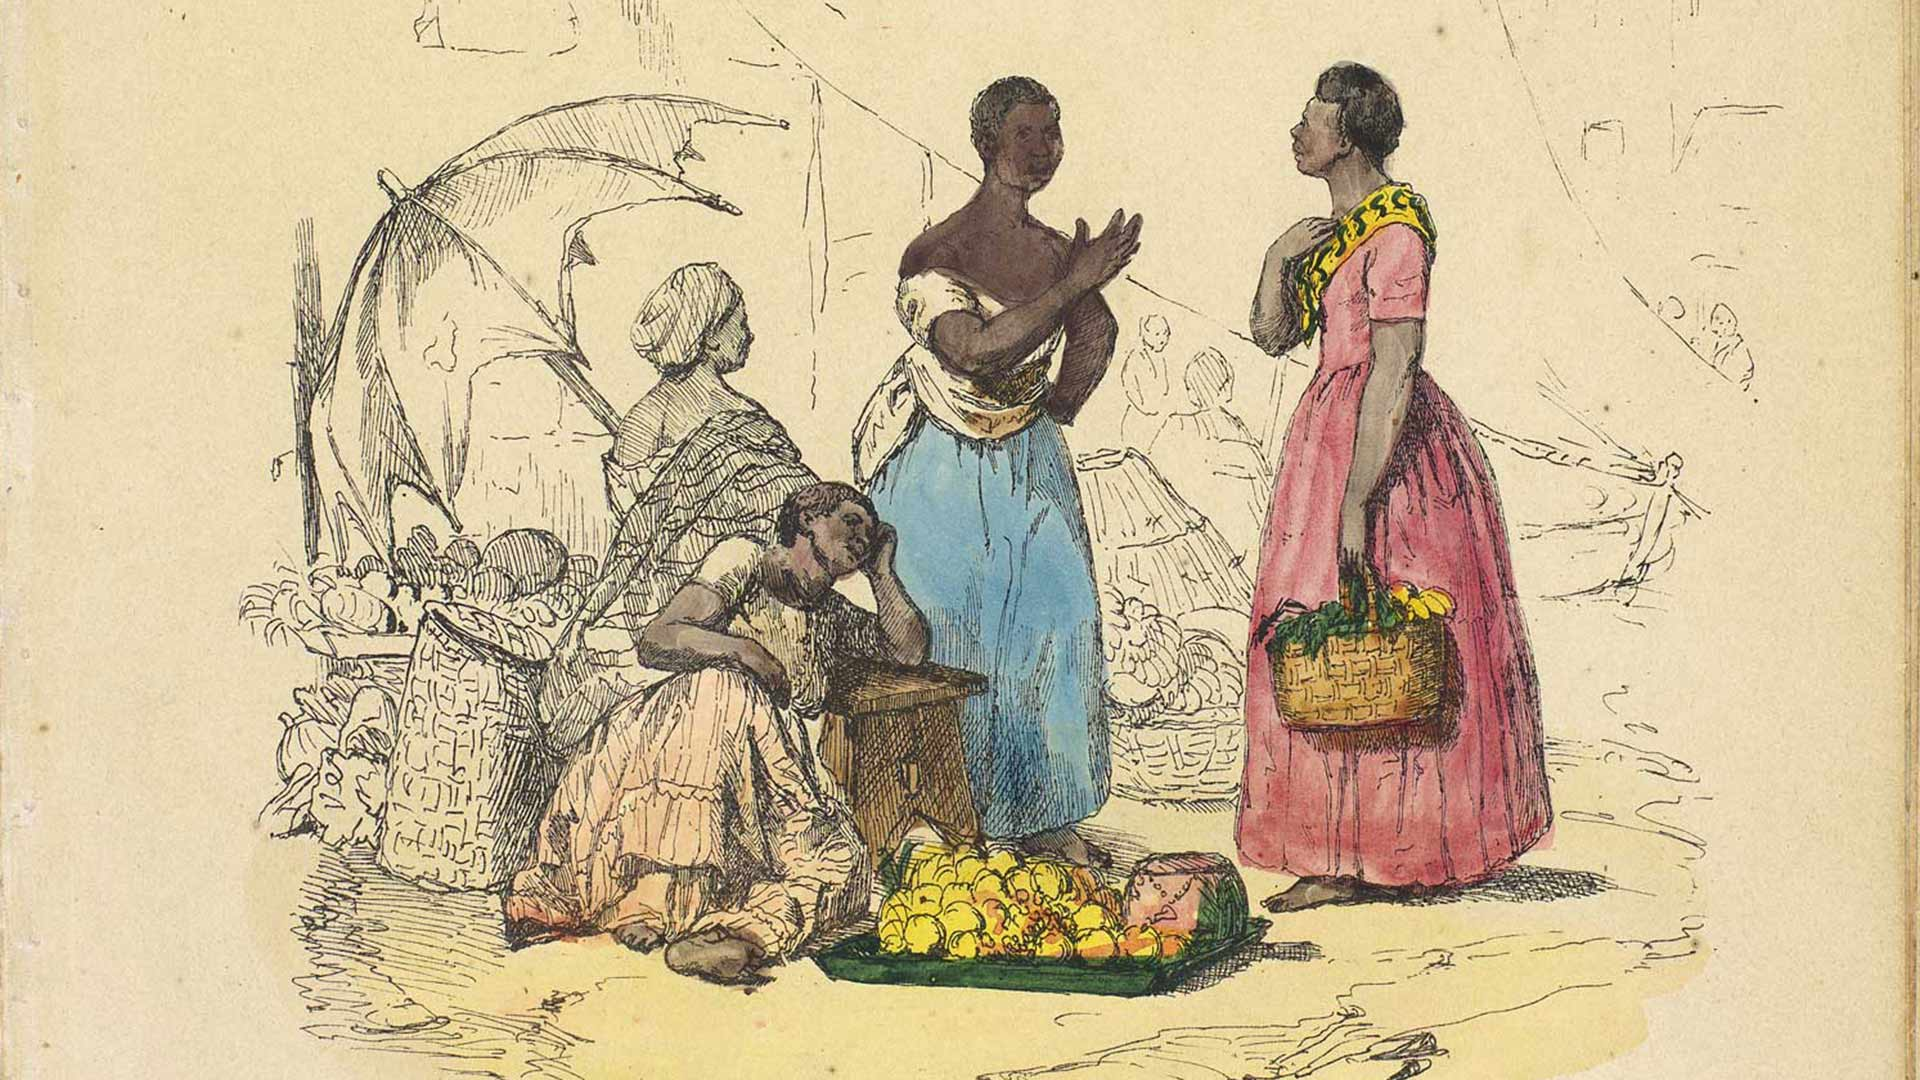 """The new digital database Enslaved.org: Peoples of the Historic Slave Trade seeks to recover fuller stories of individuals such as these women pictured on the 19th century lithograph """"A Market Scene"""" by Frederico Guilherme Briggs. (Image courtesy of BNDigital, Fundação Biblioteca Nacional, Rio de Janeiro)"""